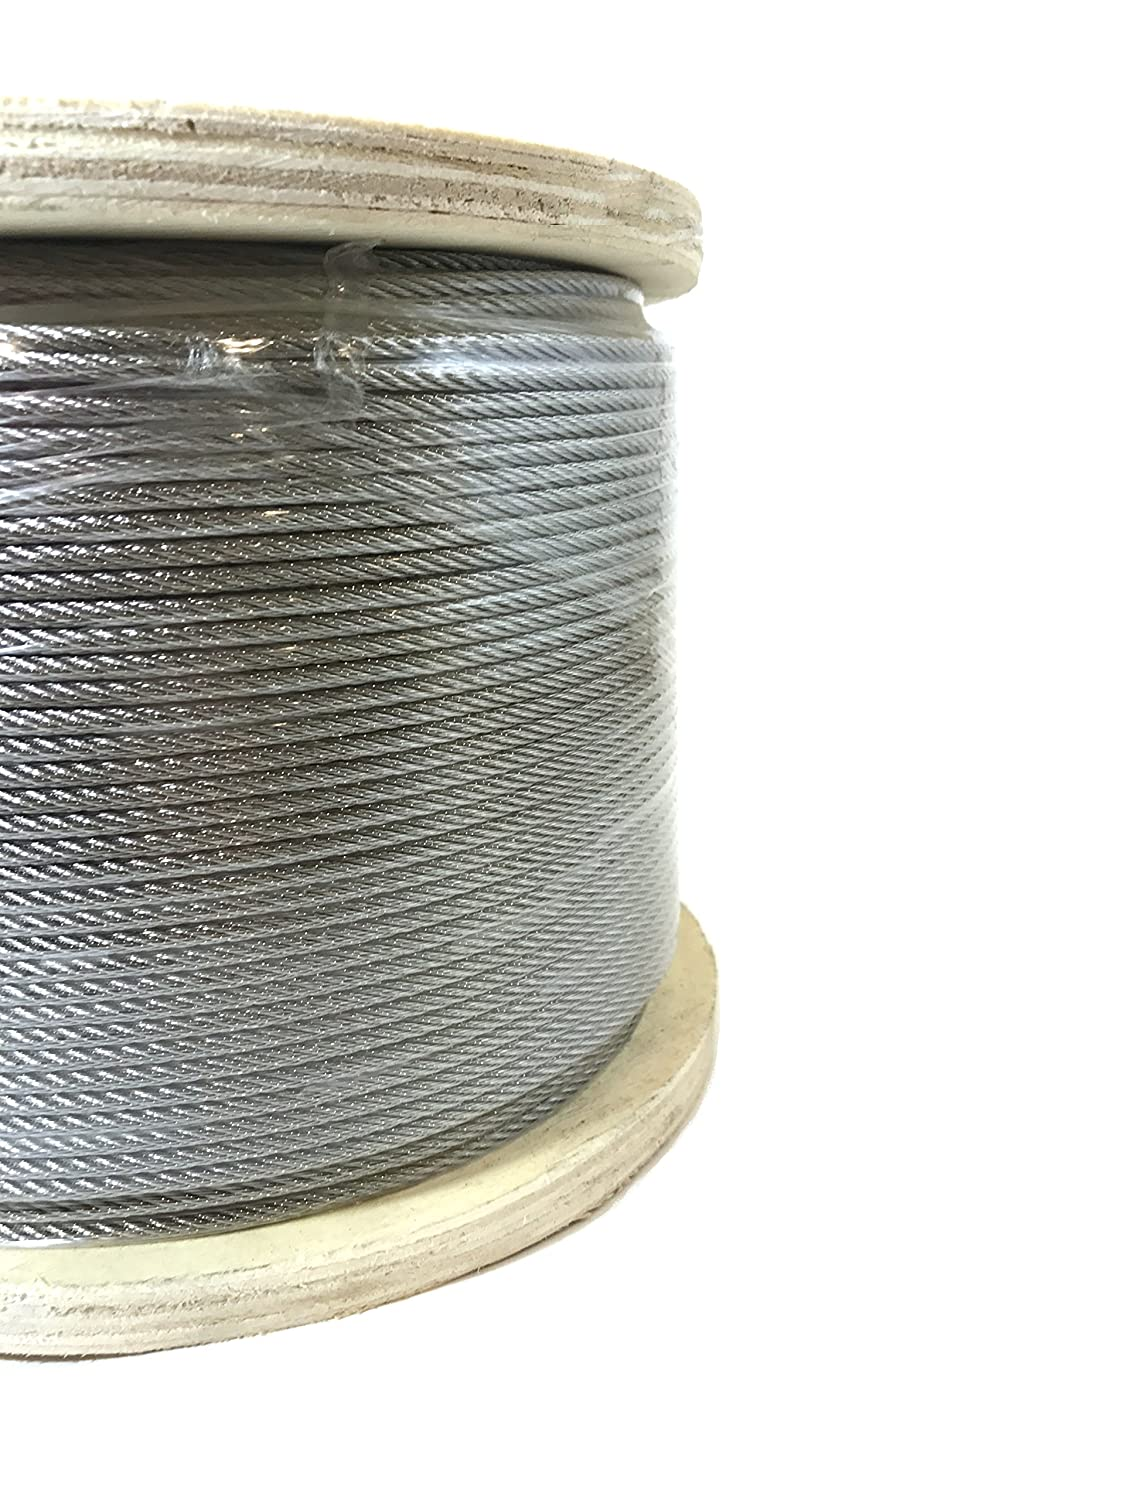 Image of 1/8' 7x7 Stainless Steel Cable Type 316 Marine Grade 1000ft Reel Cable & Wire Rope